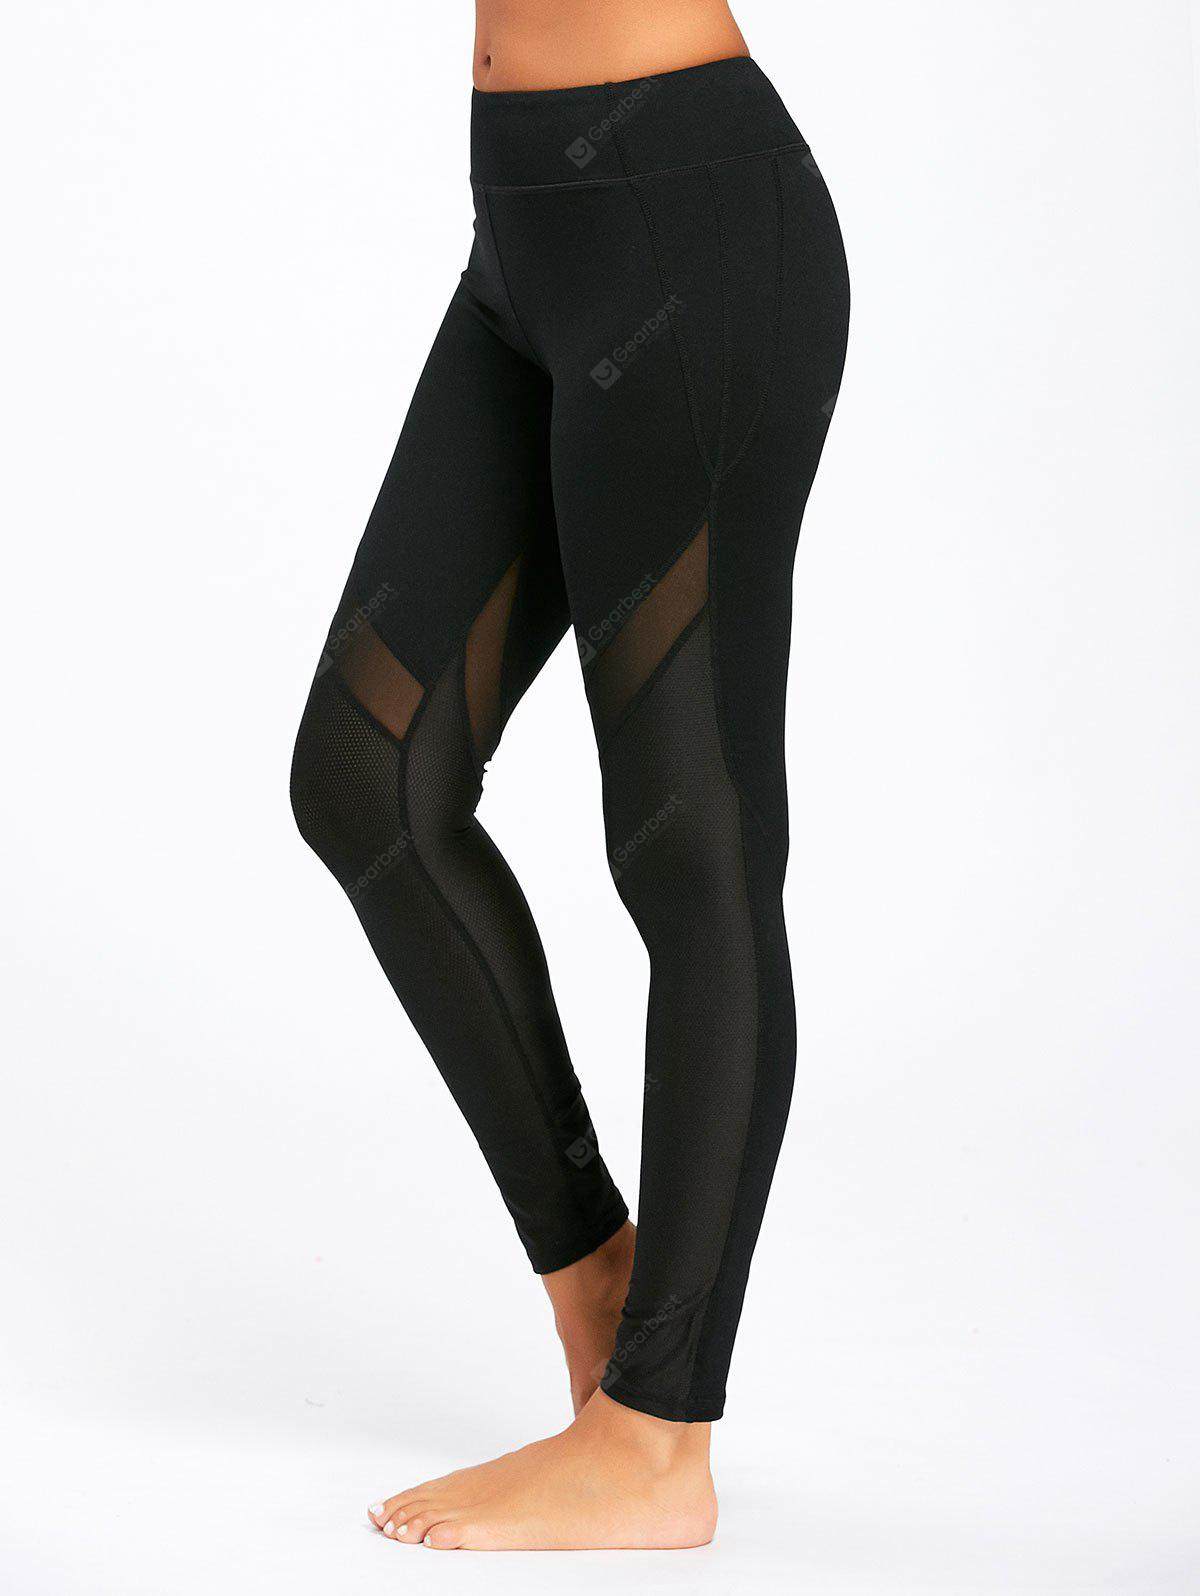 Midi Rise Sheer Mesh Panel Sport Leggings